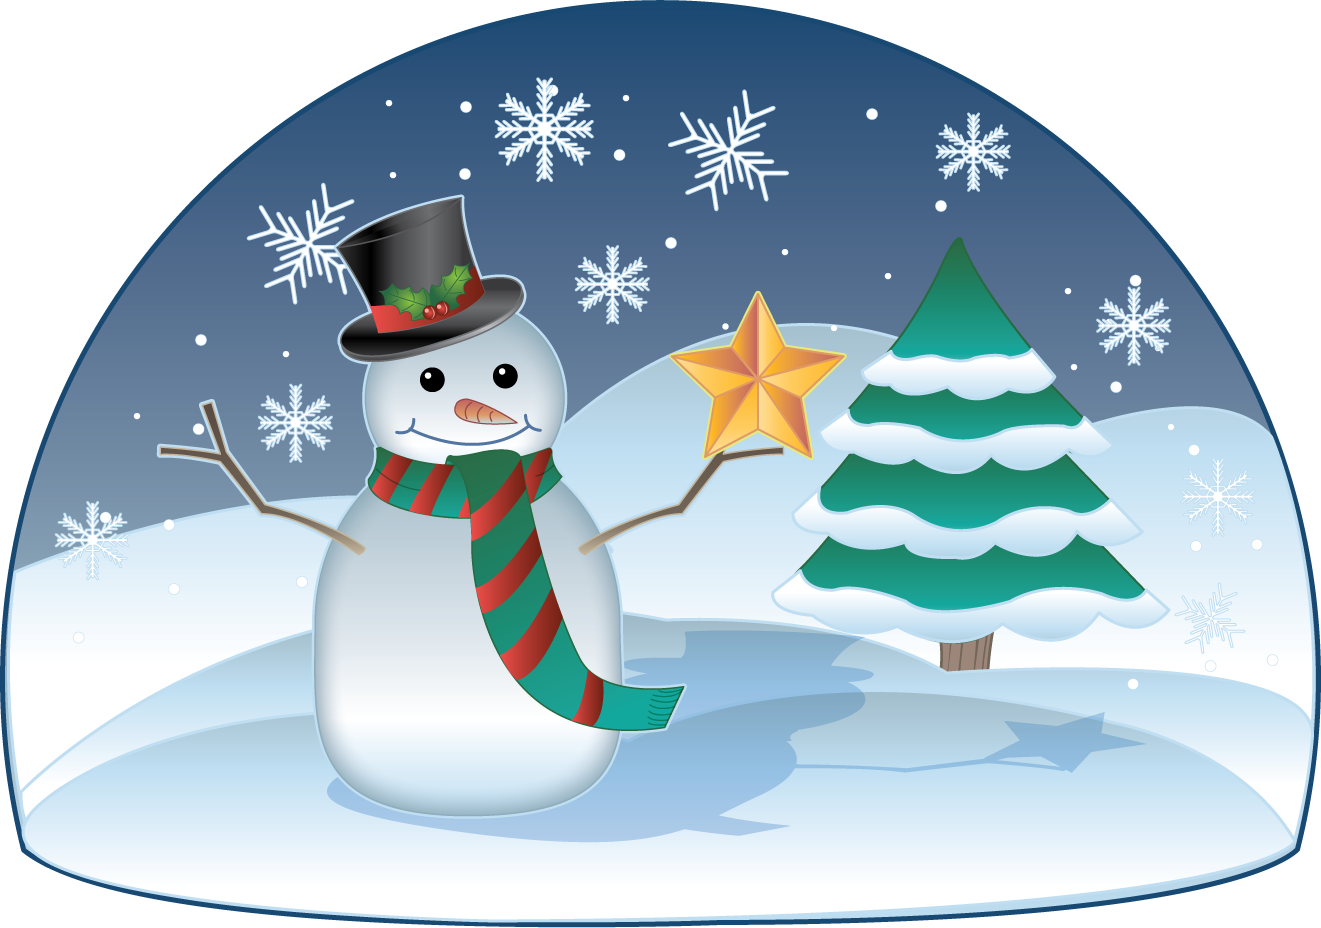 Winter holiday scene clip. Free clipart of things breaking under stress